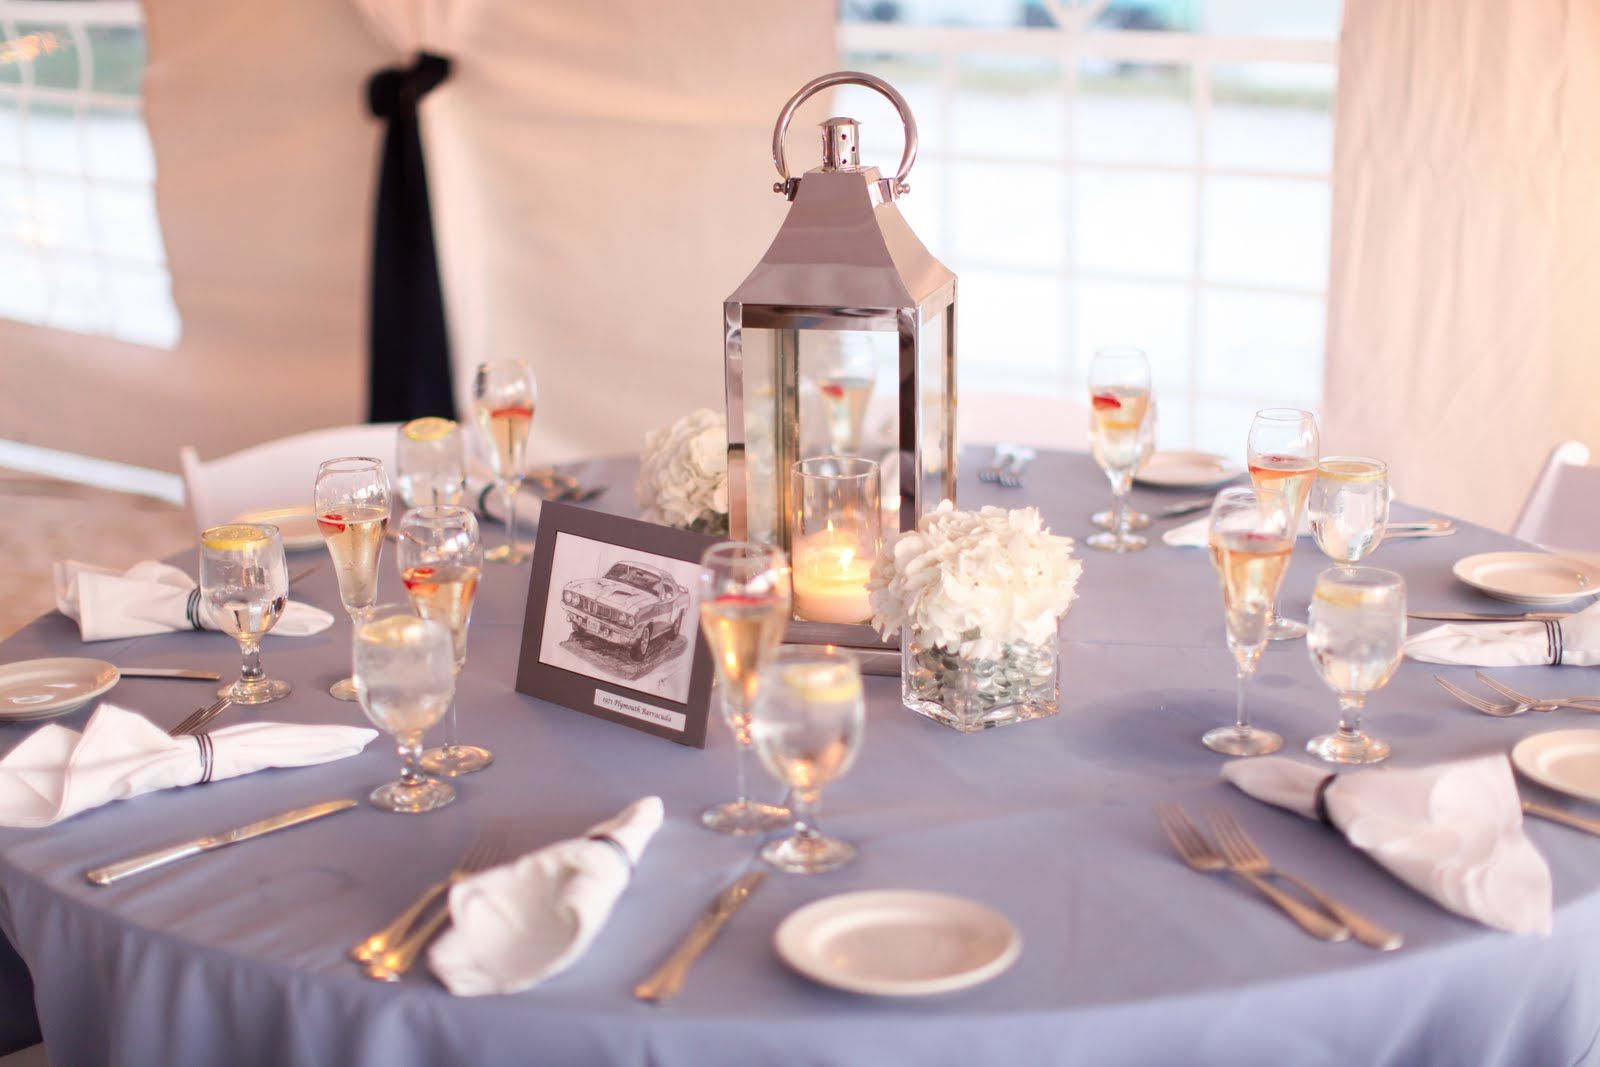 White wedding decoration ideas  table decorations for weddings lanterns spring  Unique Event Design